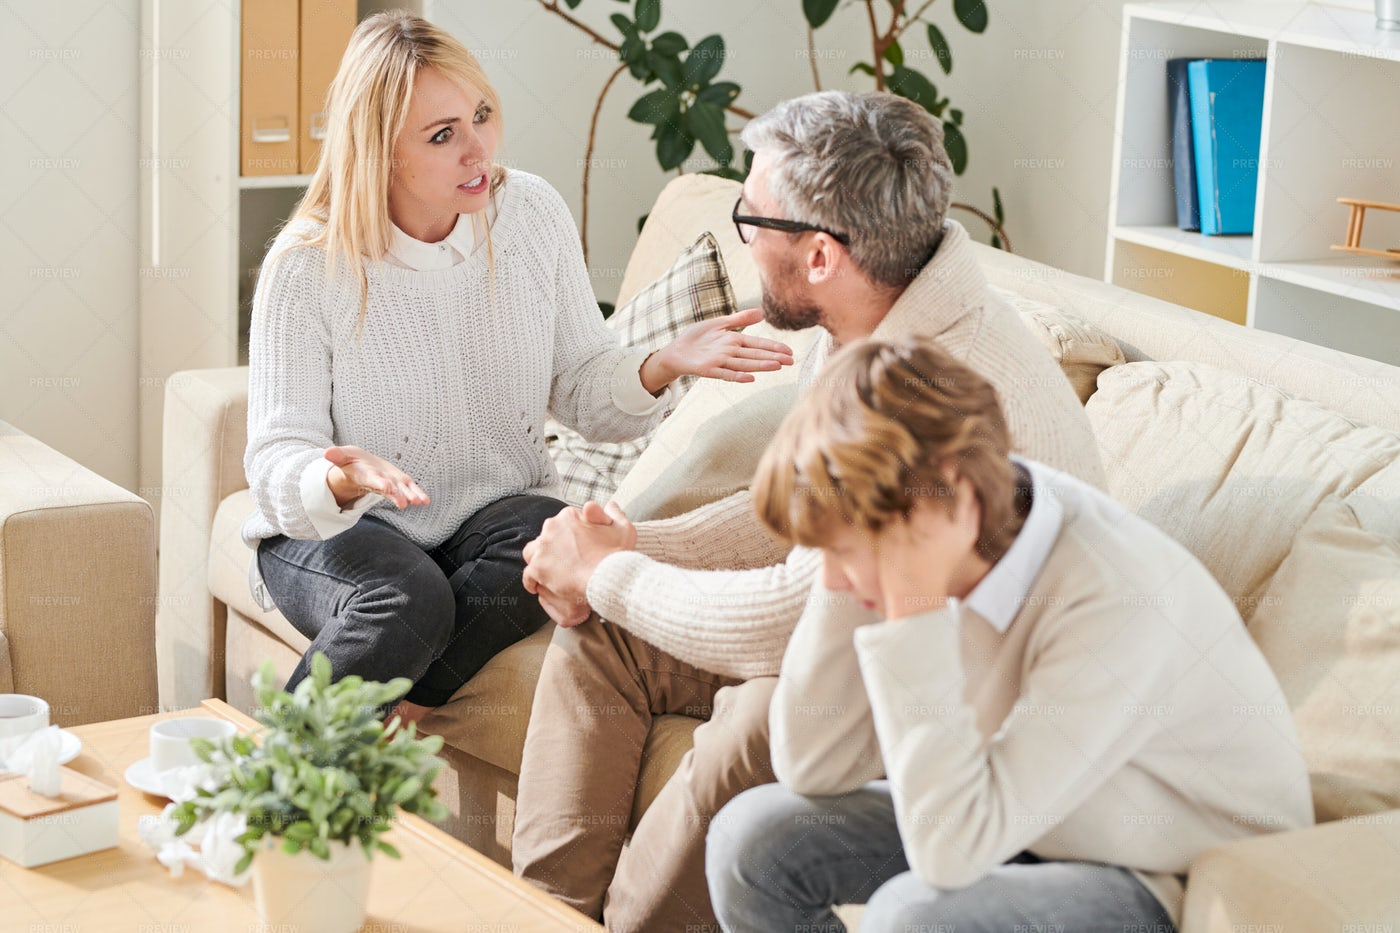 Angry Mother Screaming At Father...: Stock Photos